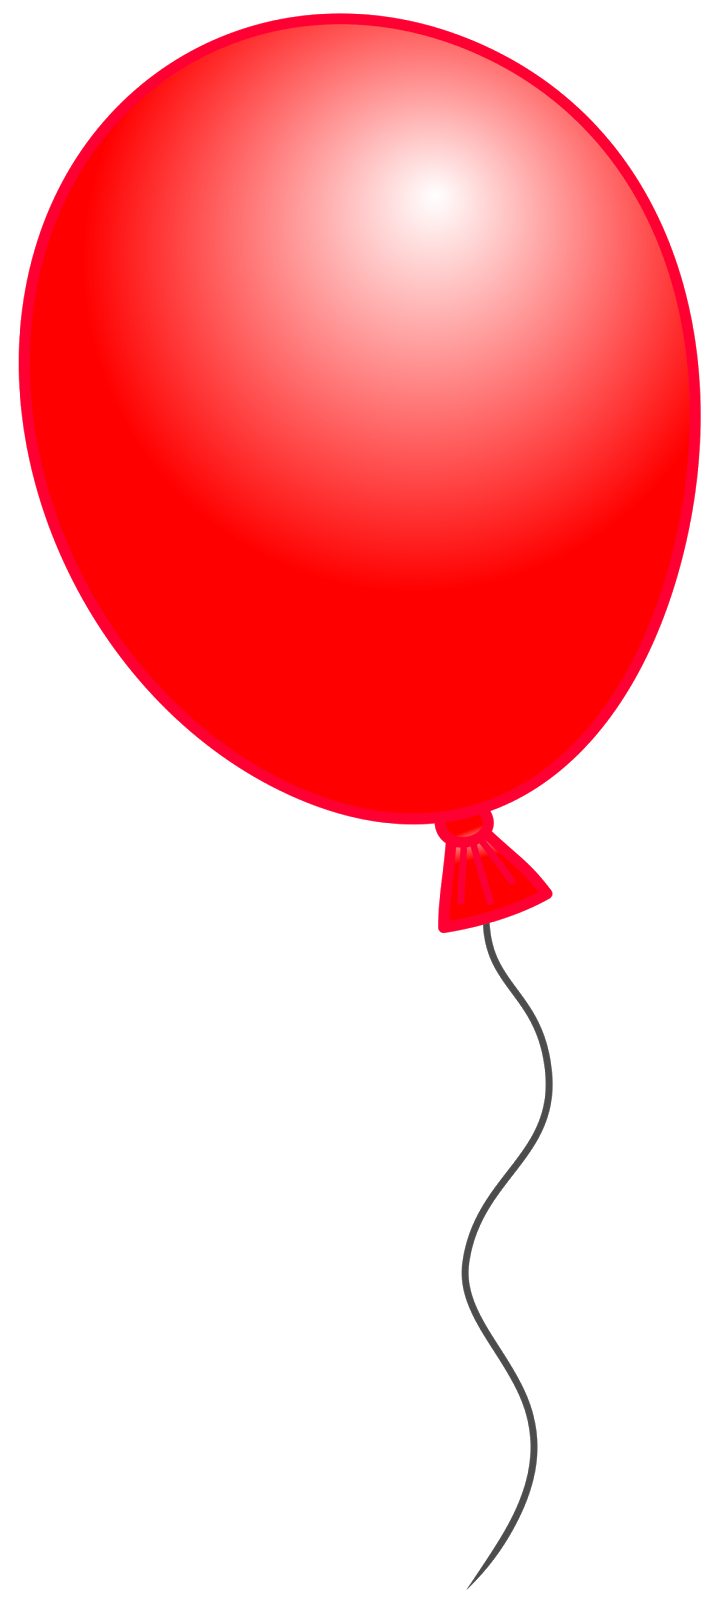 red balloon bouquet clipart